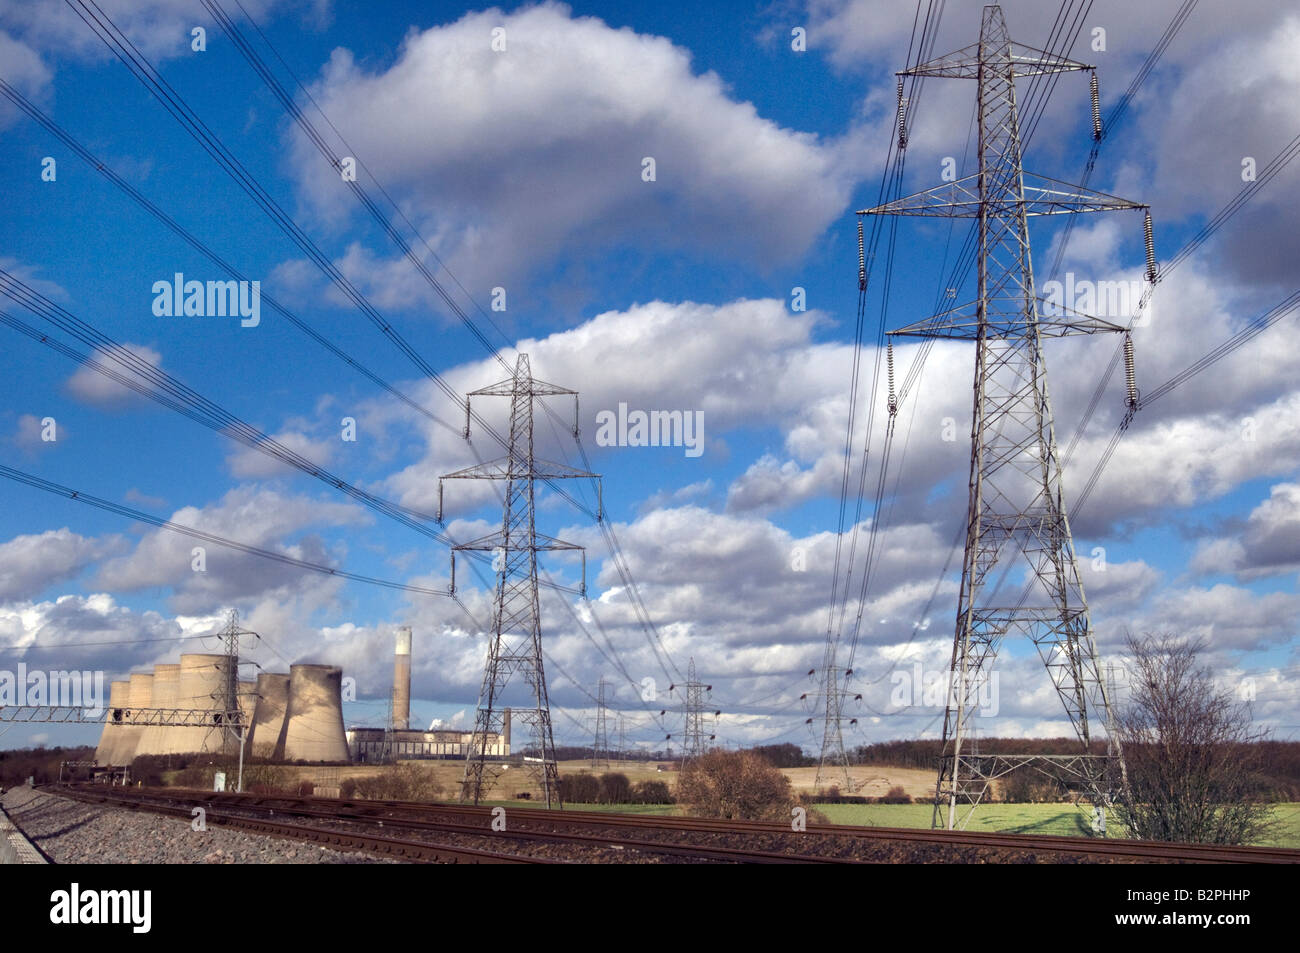 Electricity pylons and power lines at Ratcliffe on Soar coal fired power station UK - Stock Image